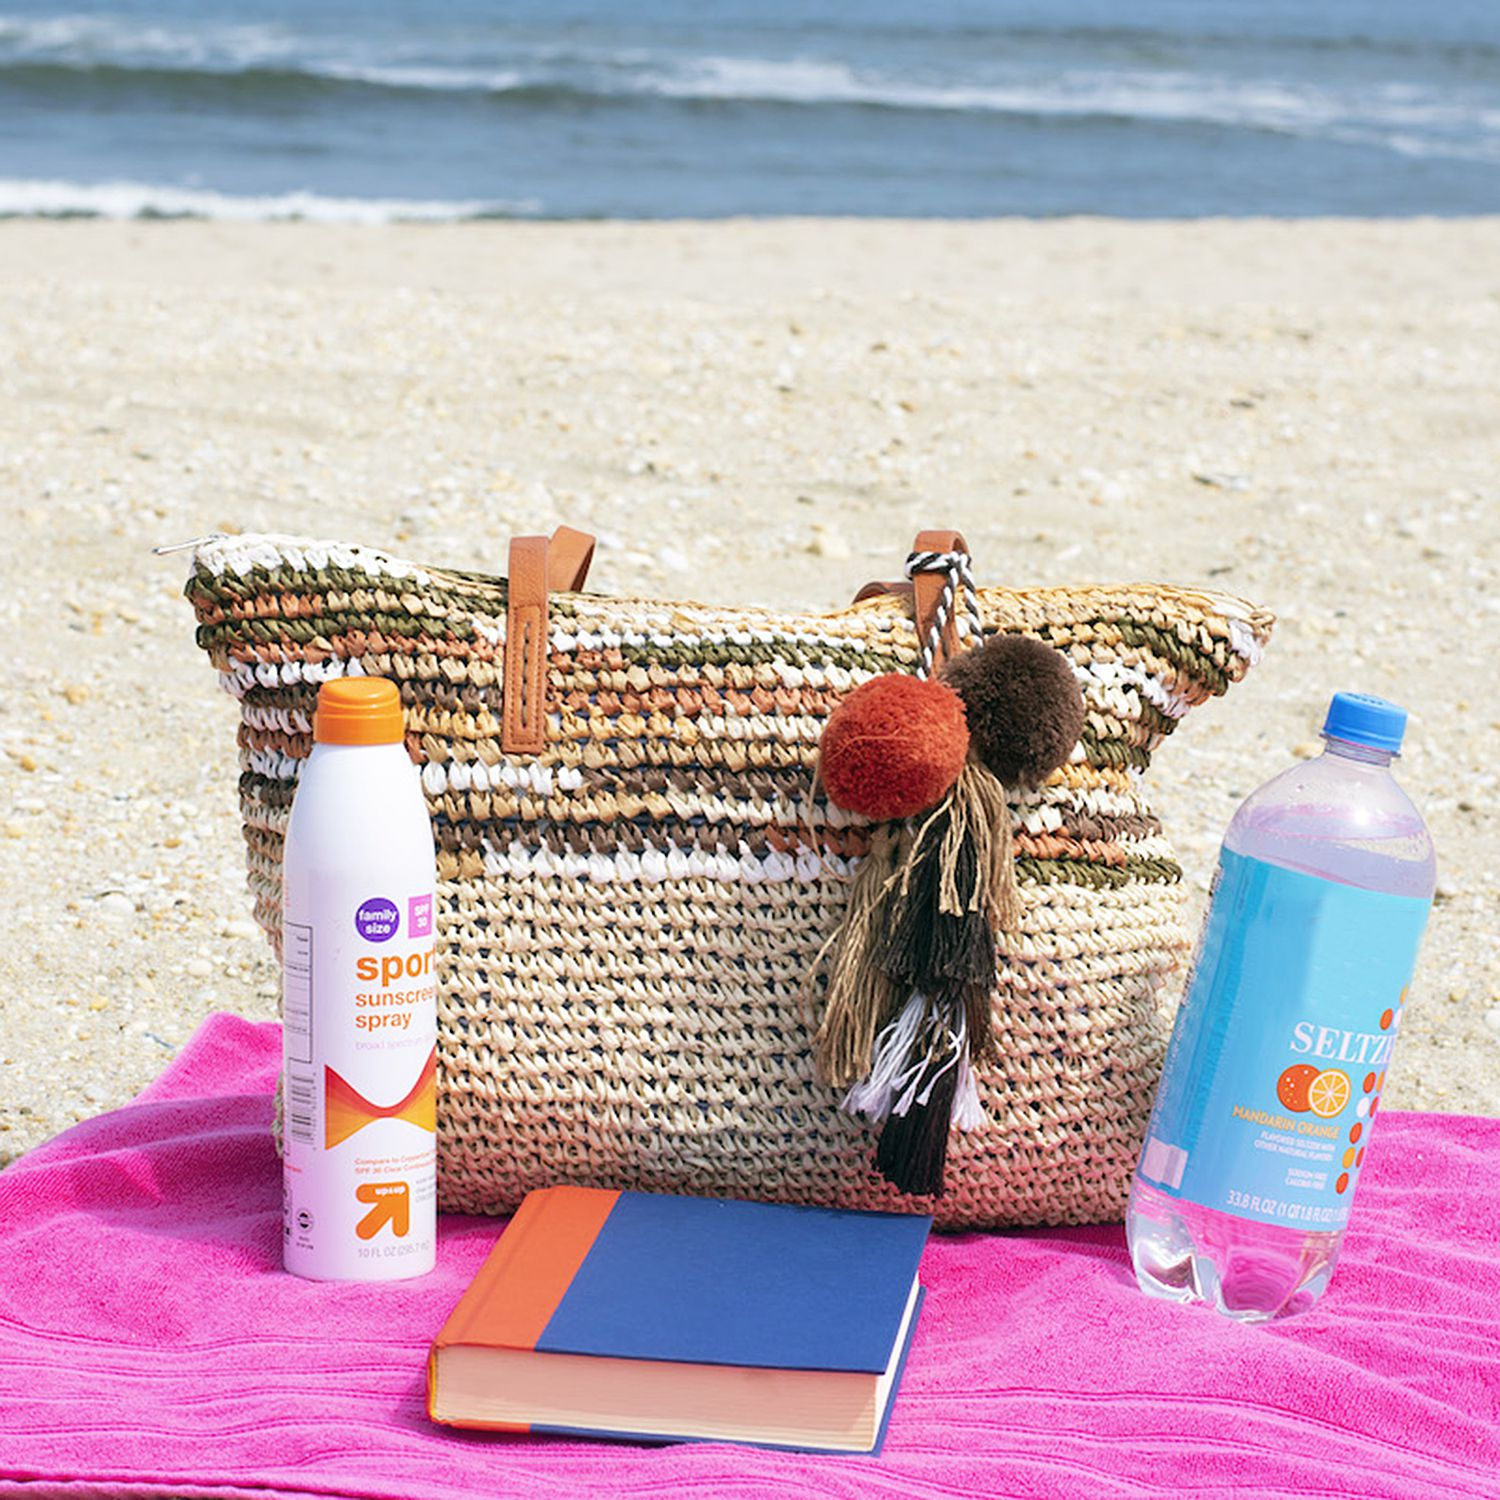 Daisy Rose Large Straw Beach Tote Bag Review